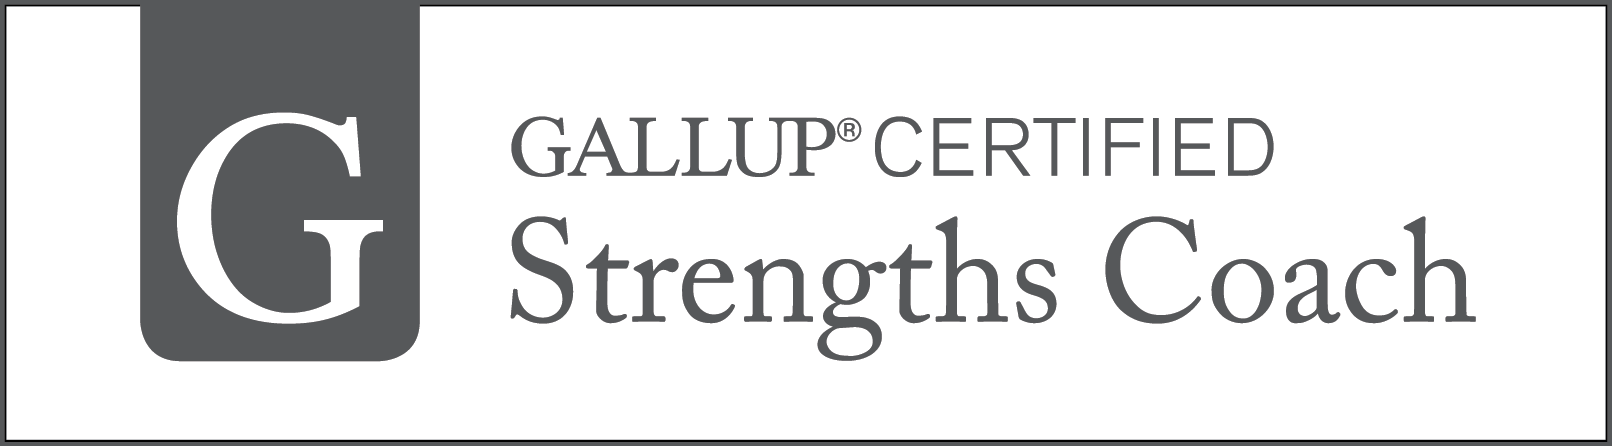 Gallup Strengths coach Dominic Monkhouse